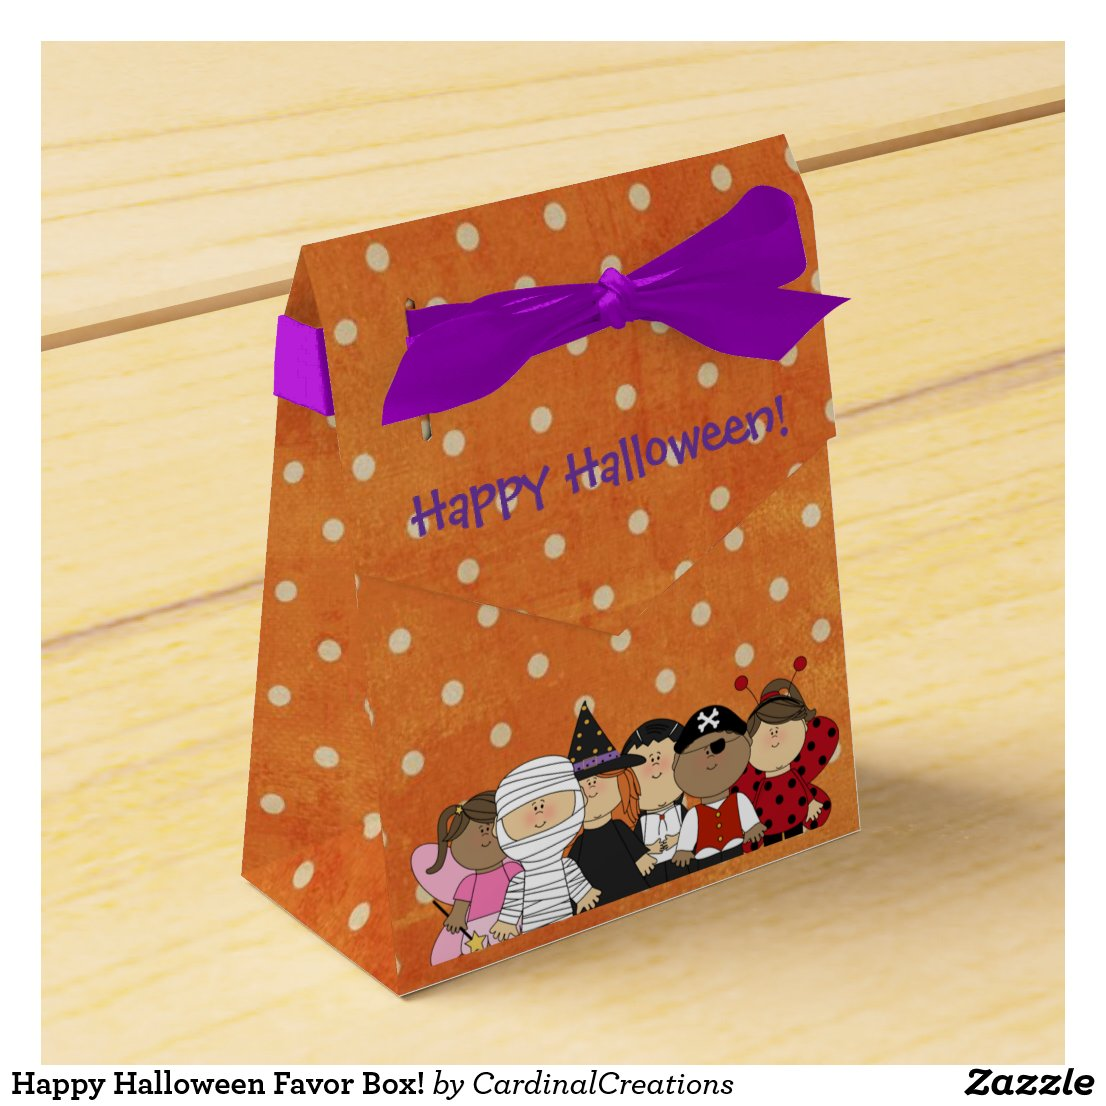 Happy Halloween Favor Box!